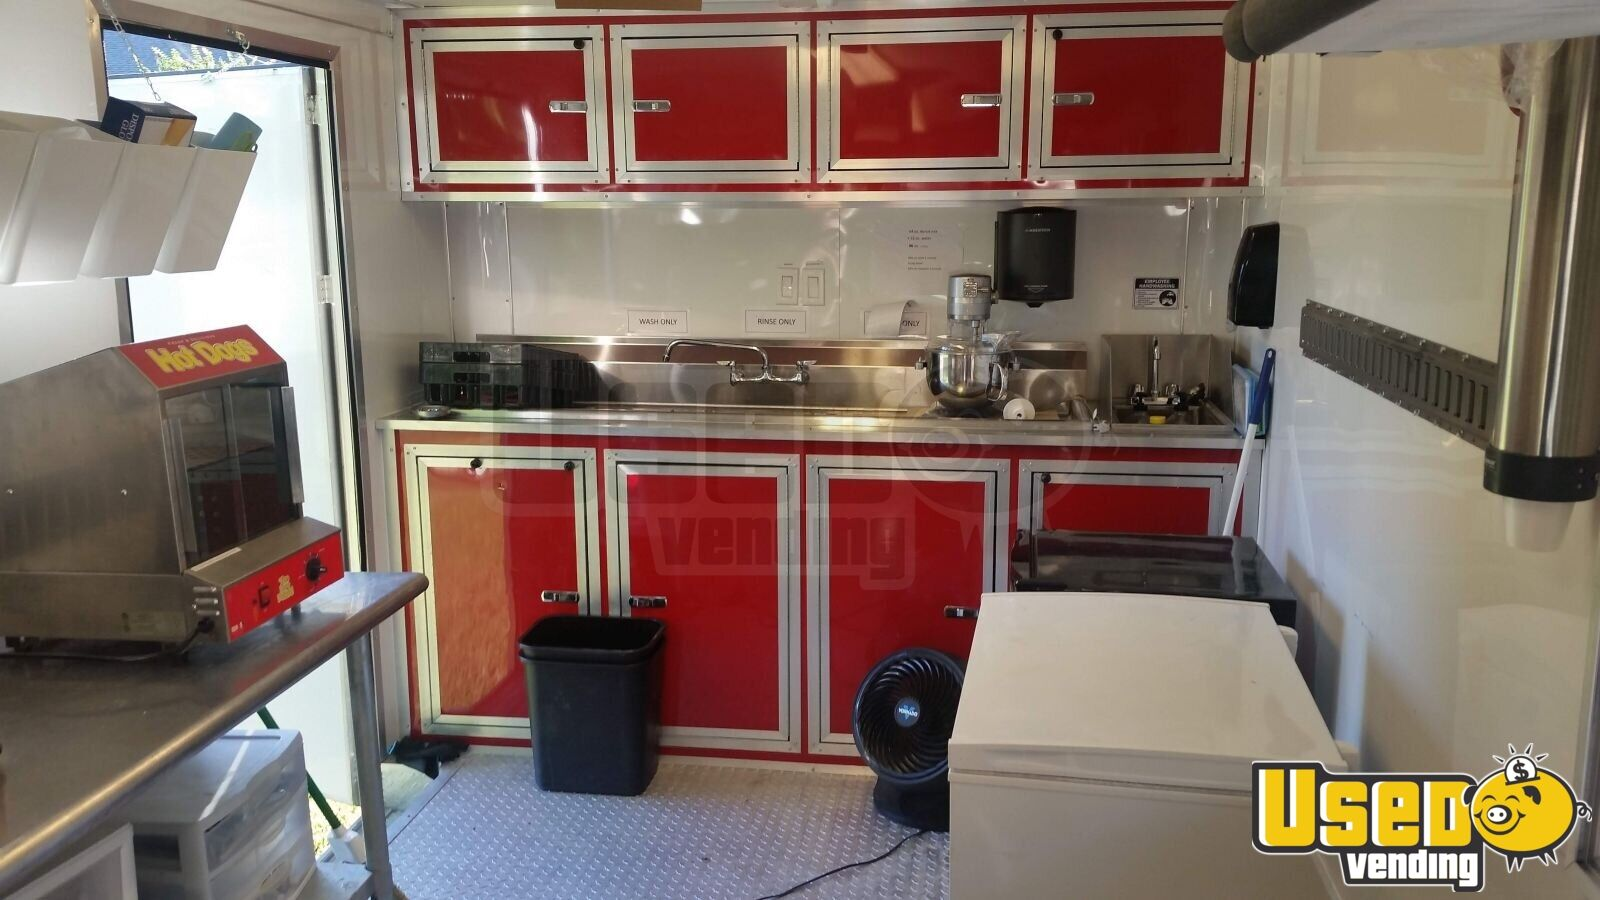 2016 Food Concession Trailer Kitchen Food Trailer Exterior Customer Counter Arkansas for Sale - 7